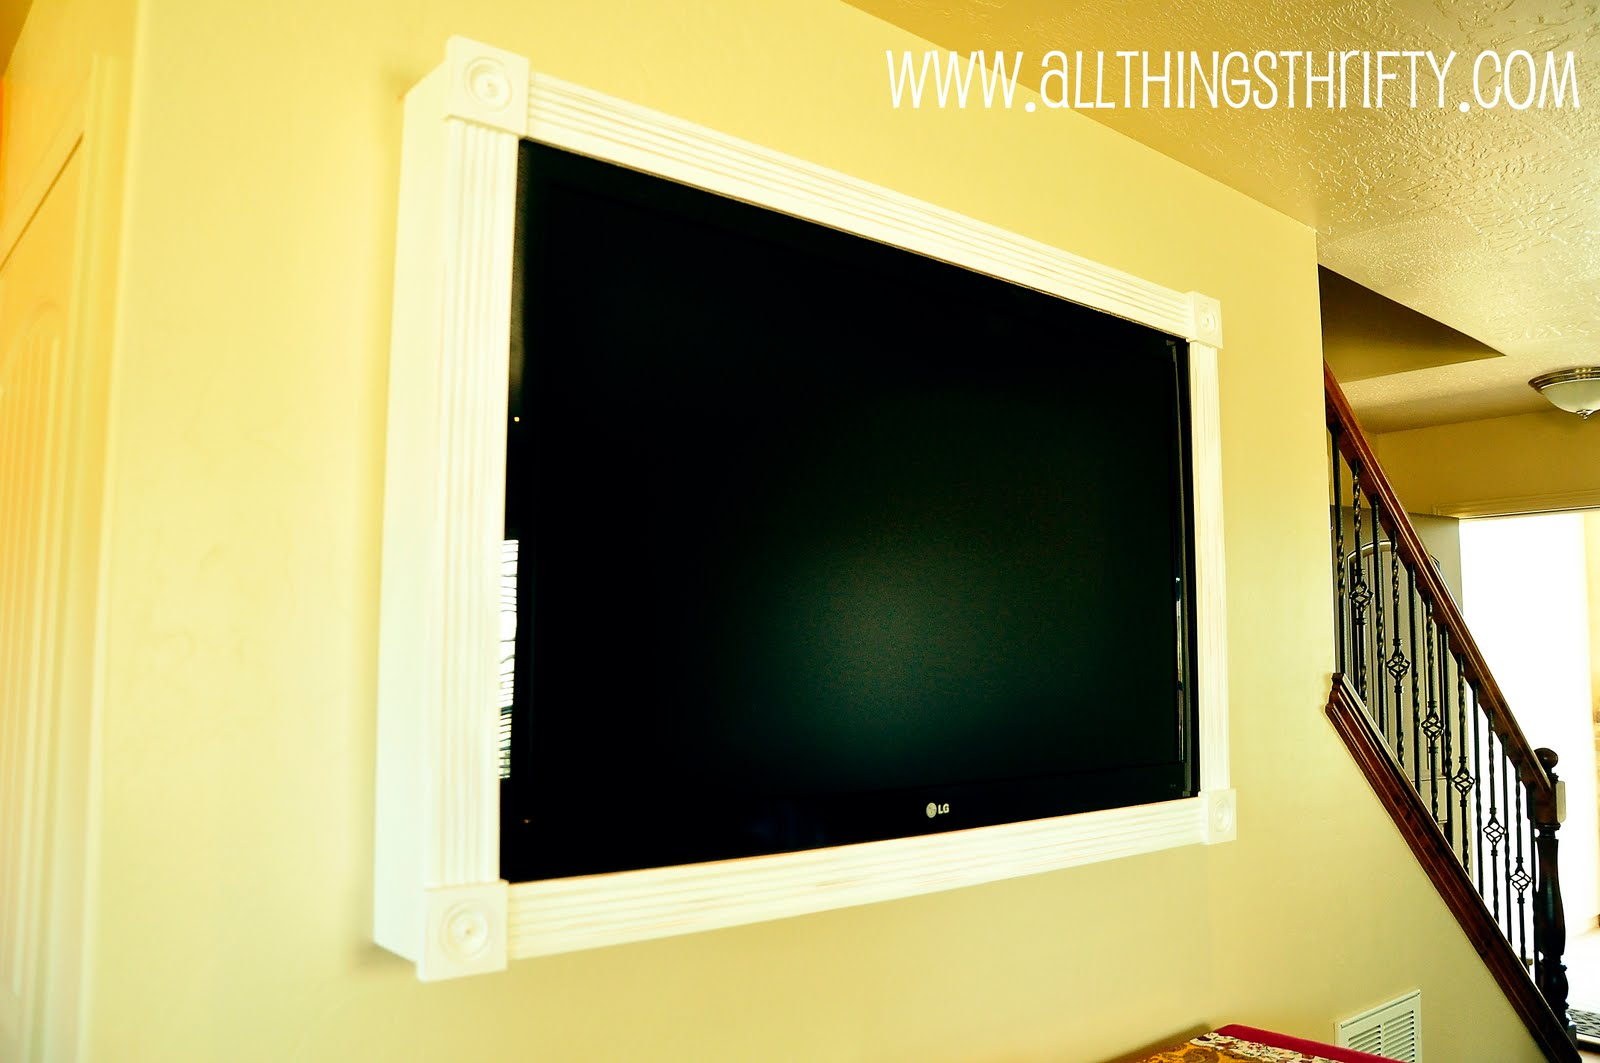 picture frames for flat screen tvs | My Web Value